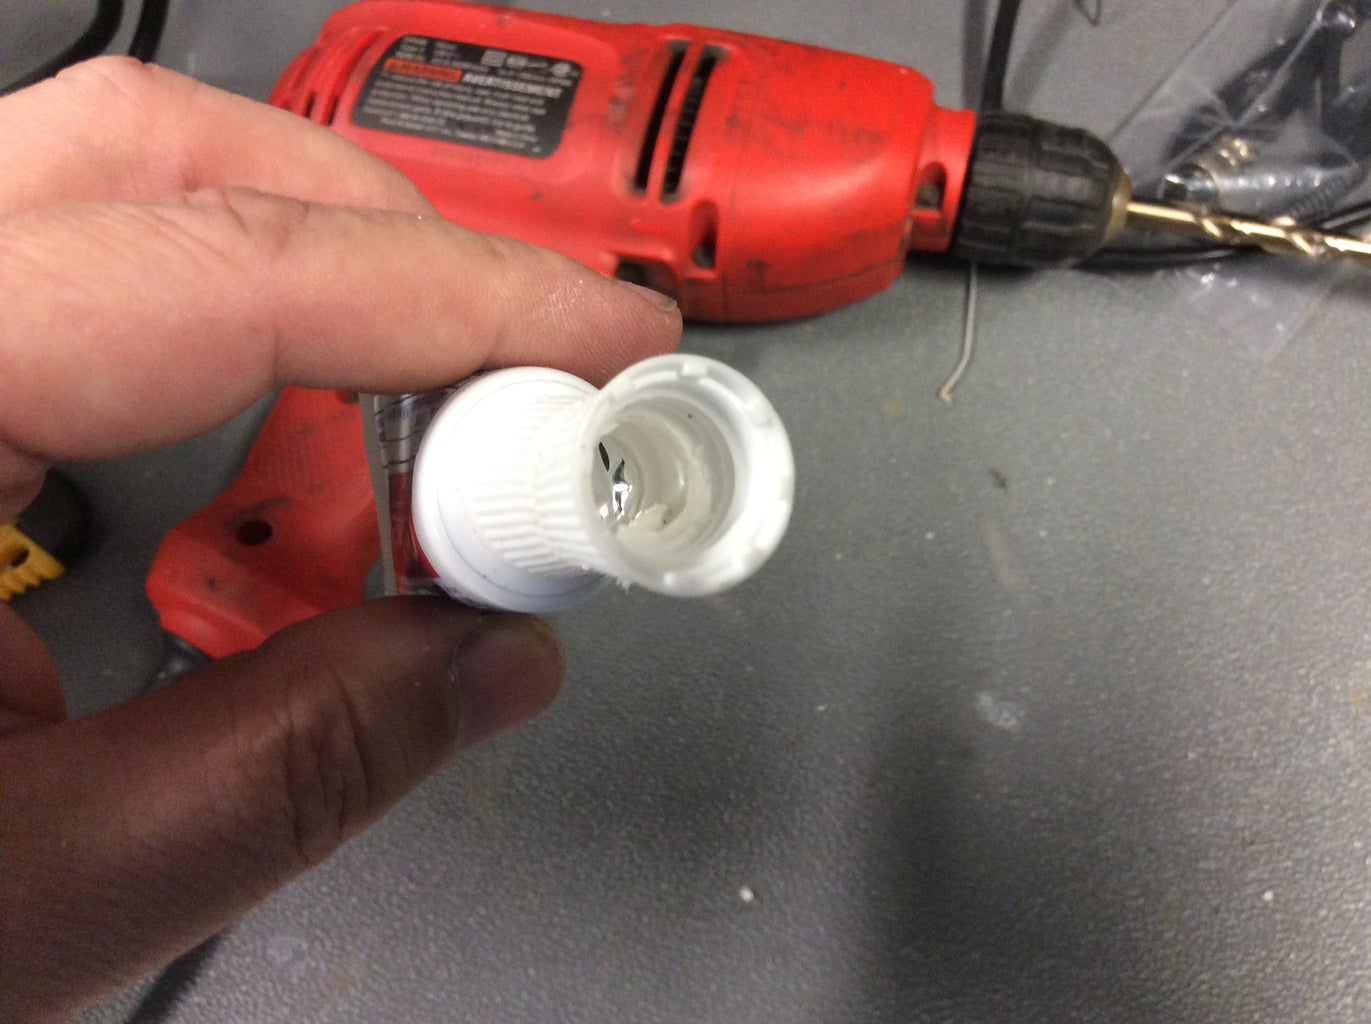 Step 3: Drill Out the Ends of the Caps to Allow Paste Flow